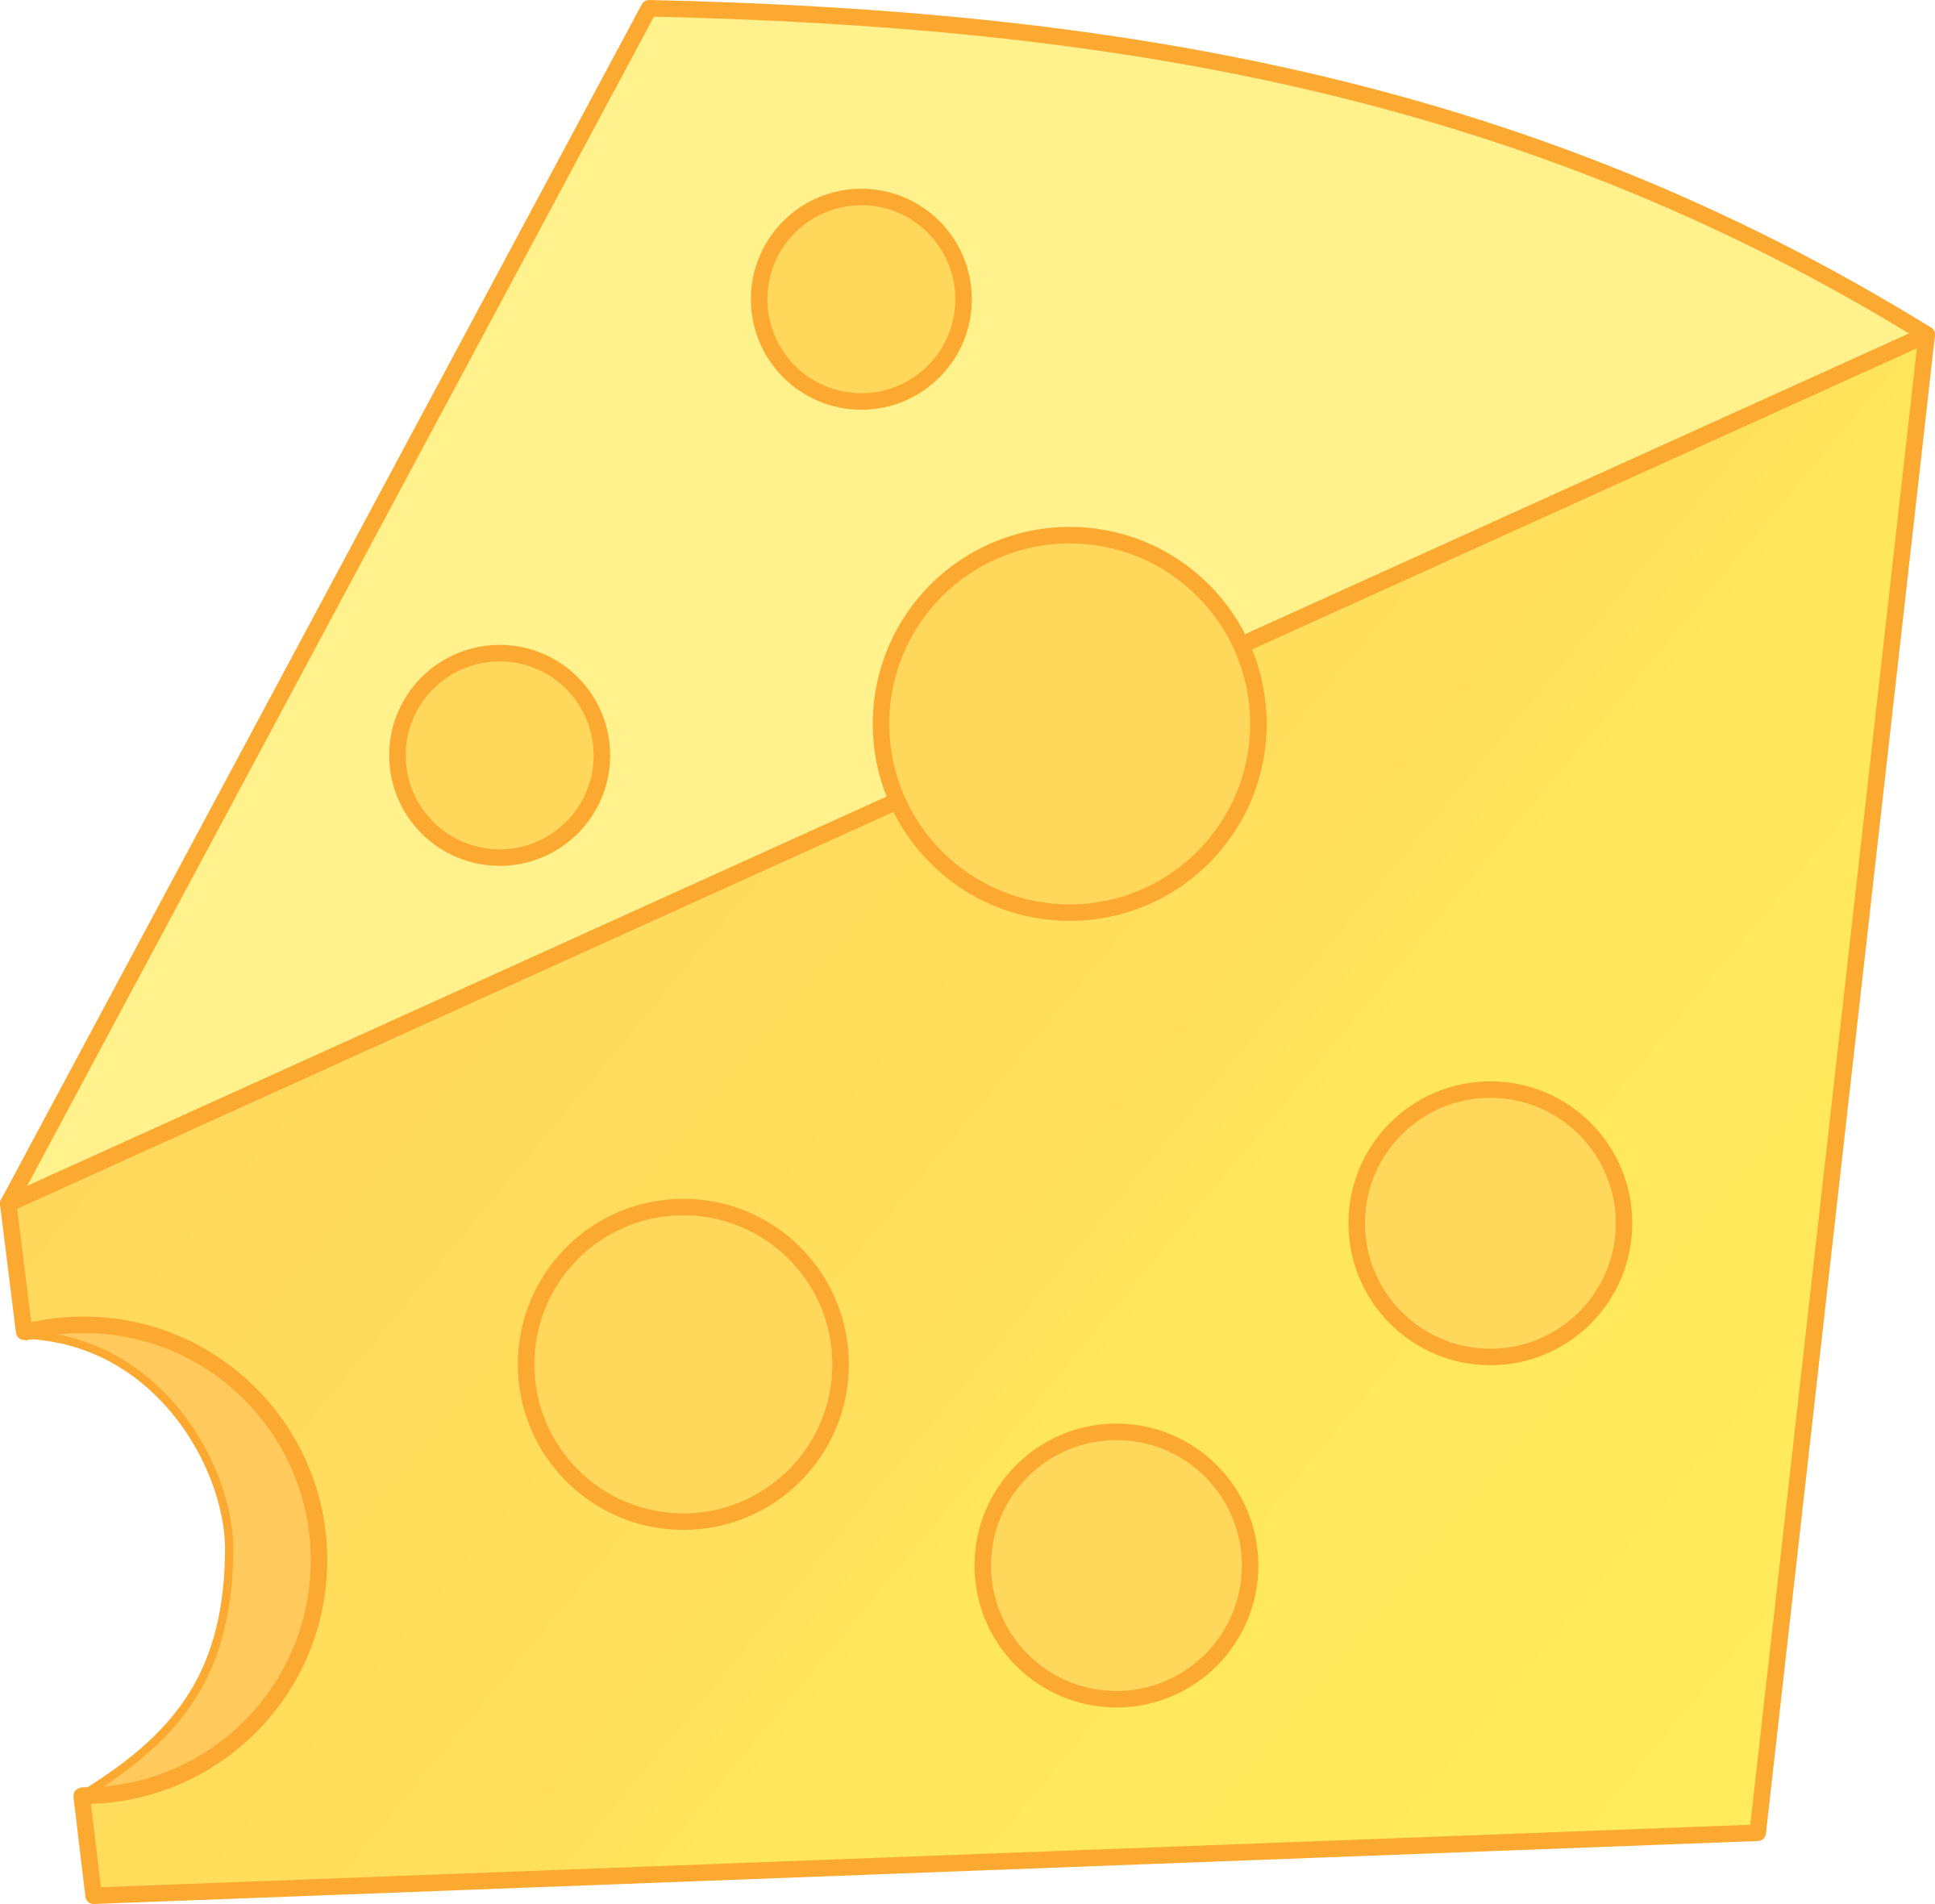 Cheese cartoon png. Small icons free and